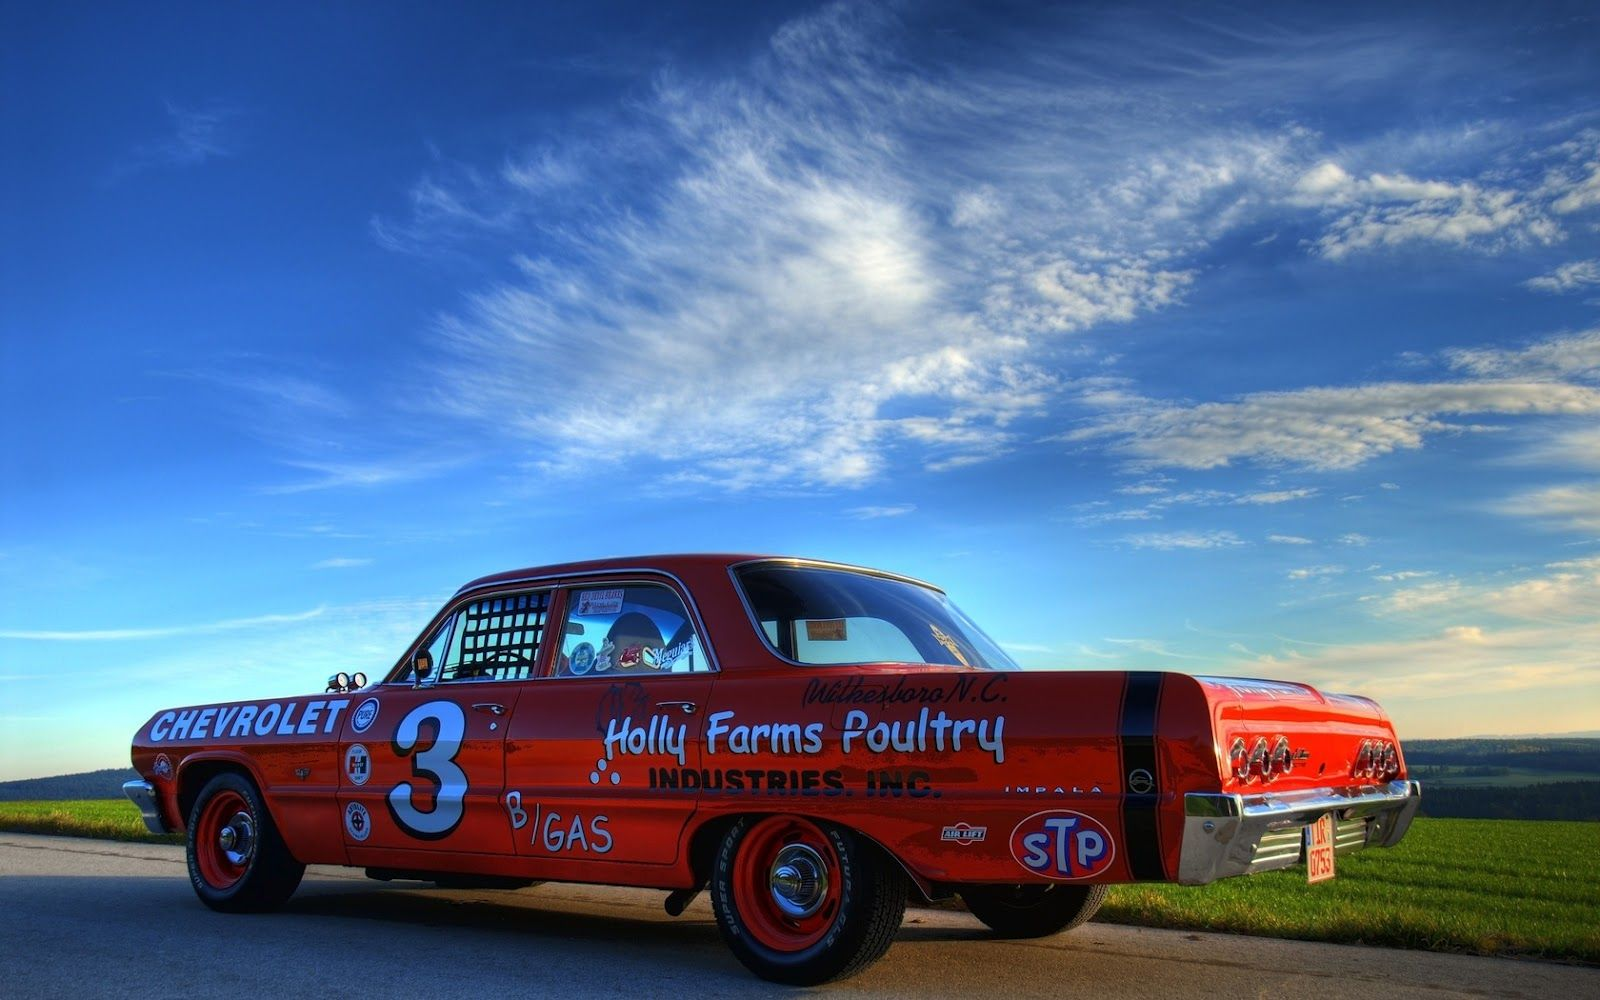 Vehicles Nascar Chevrolet Hot Rod Muscle Car Classic Car Wallpaper